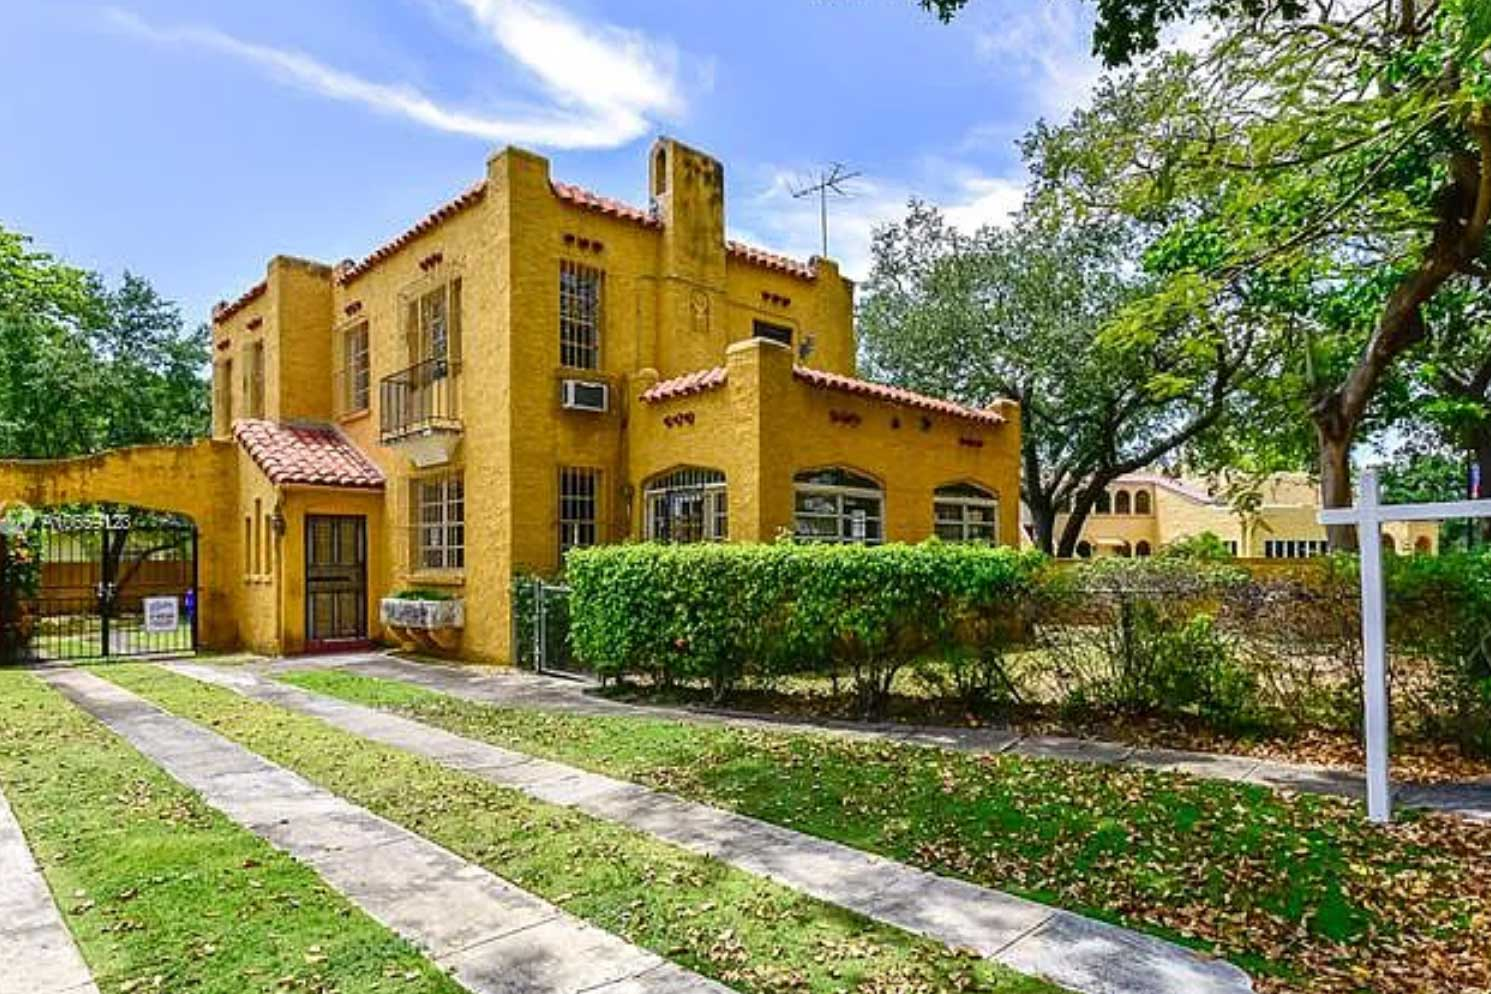 Cool 9 Beautiful Historical Houses For Sale In Southeast Florida Home Interior And Landscaping Ponolsignezvosmurscom